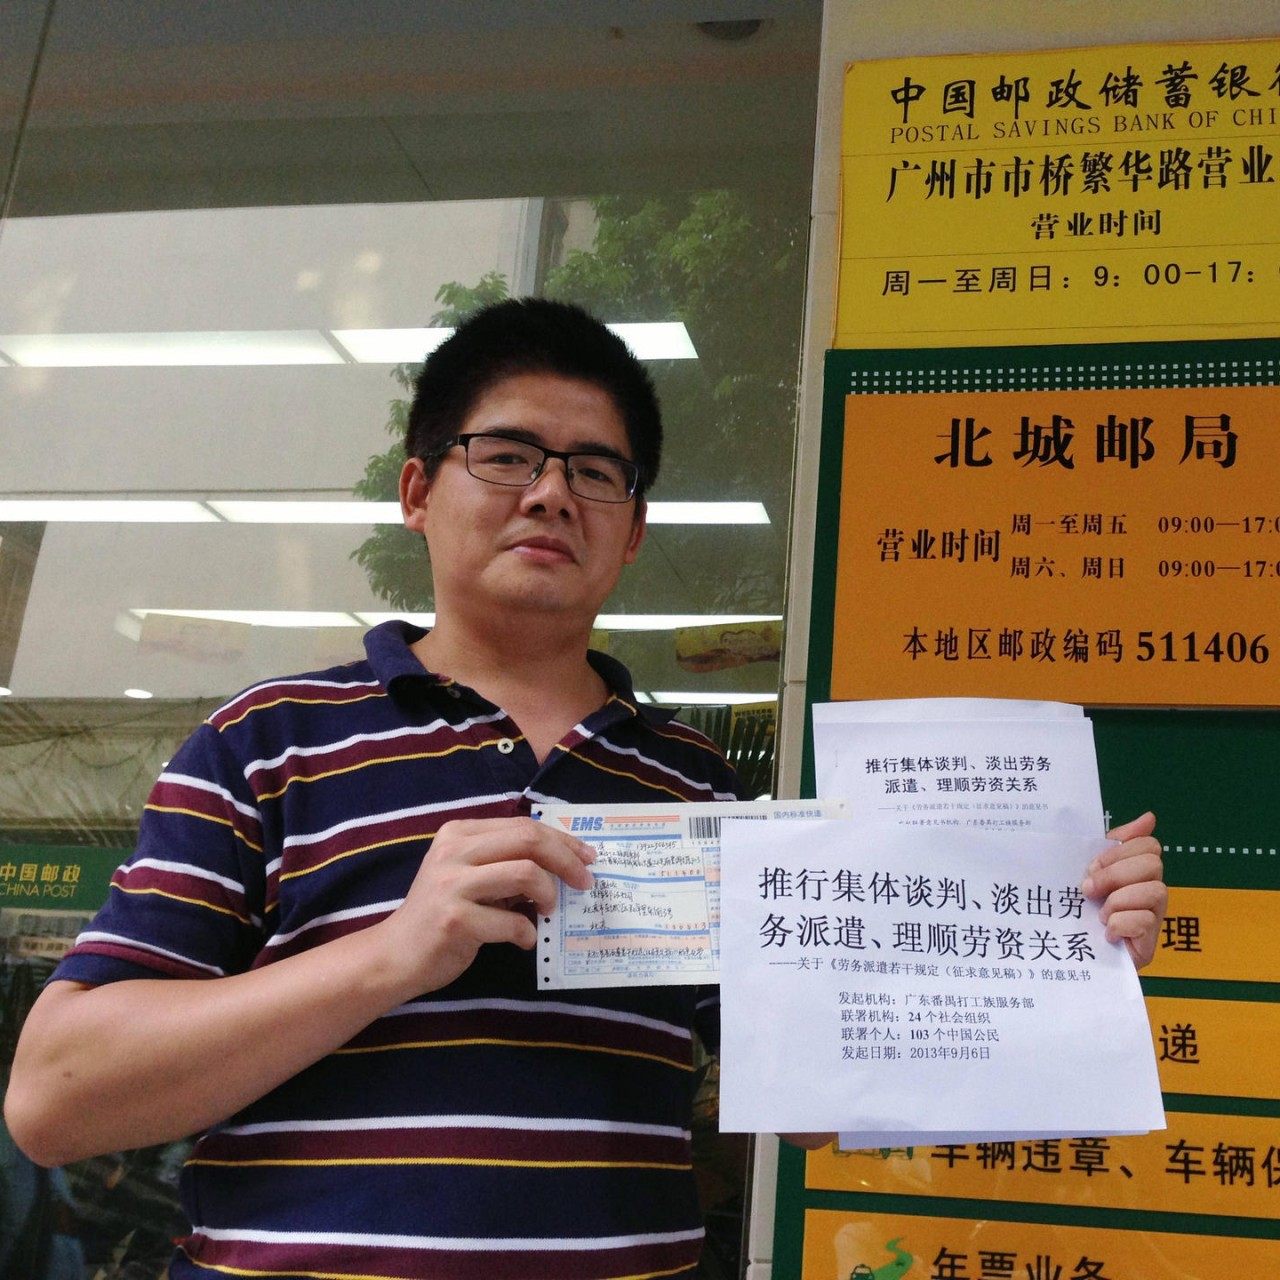 Three influential mainland Chinese labour activists detained